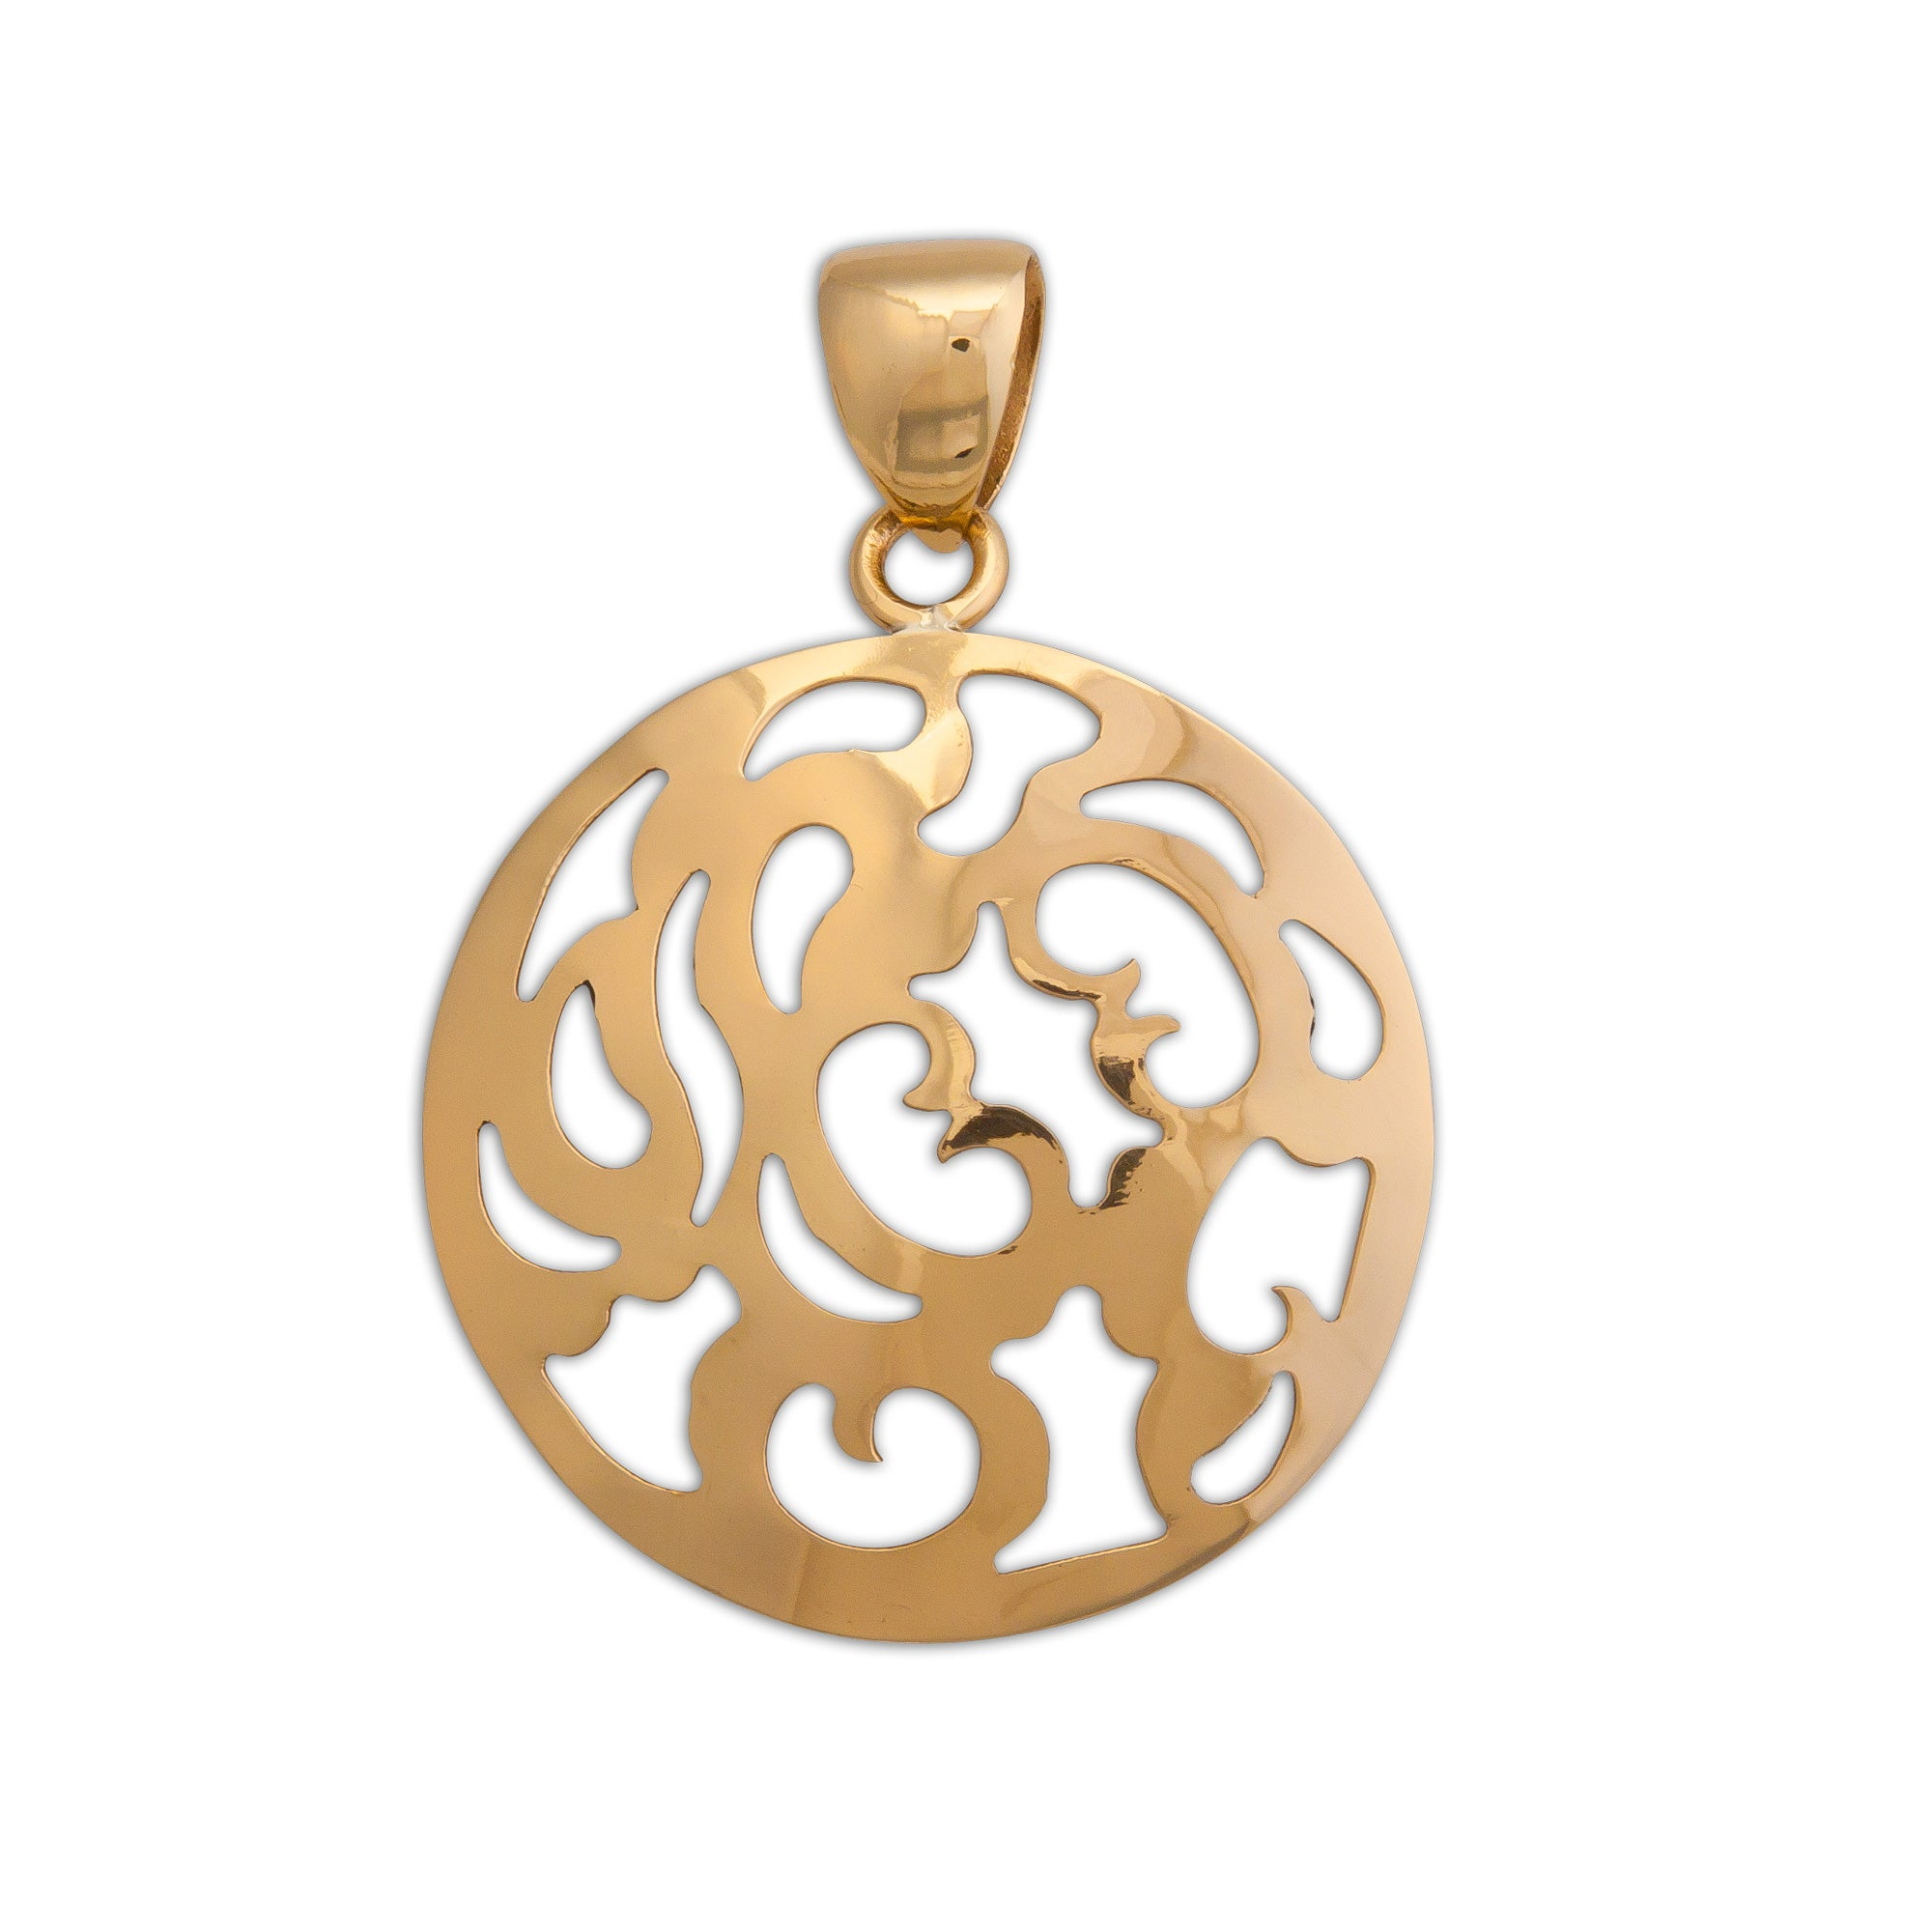 Alchemia-Round-Patterned-Pendant-1-Charles Albert Inc